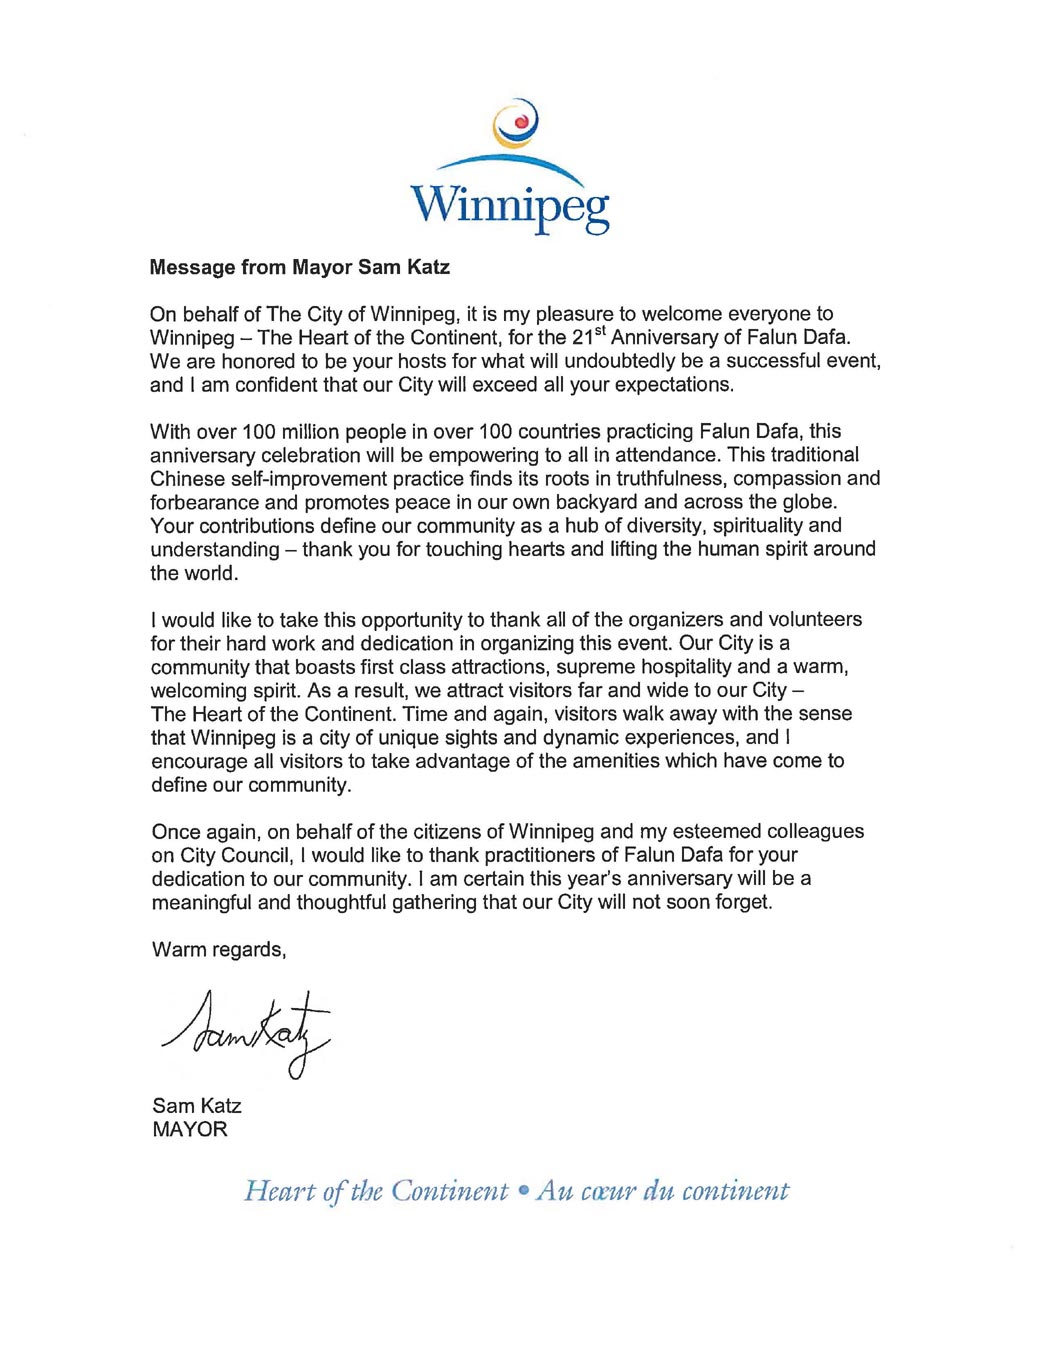 Canada government officials write to congratulate 21st letter of greeting from sam katz mayor of the city of winnipeg kristyandbryce Images